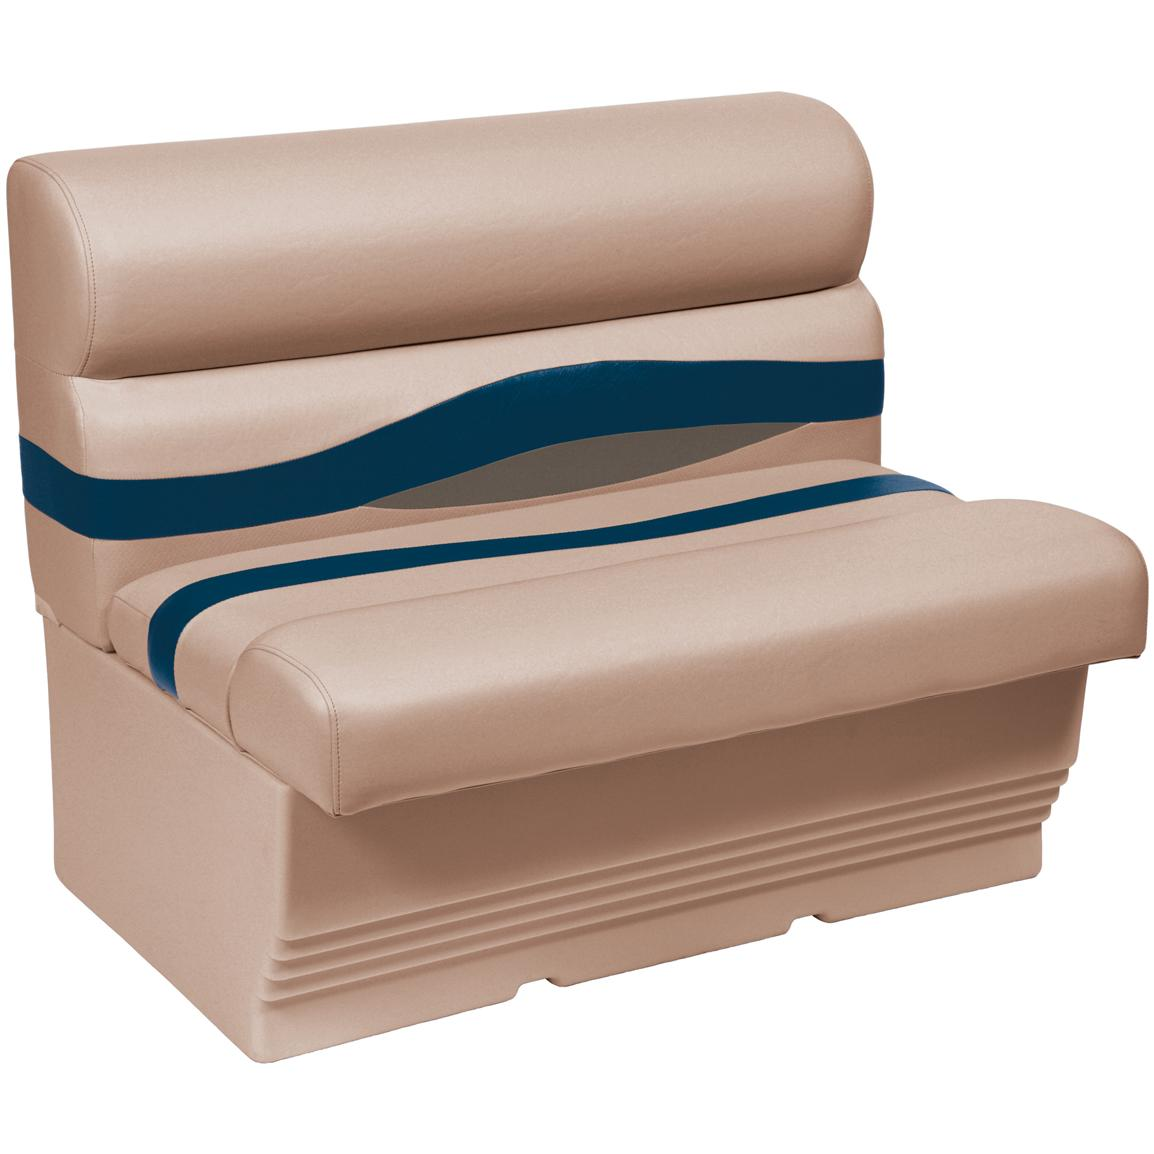 Wise® Premier 1100 Series 27 inch Pontoon Bench Seat, Color D